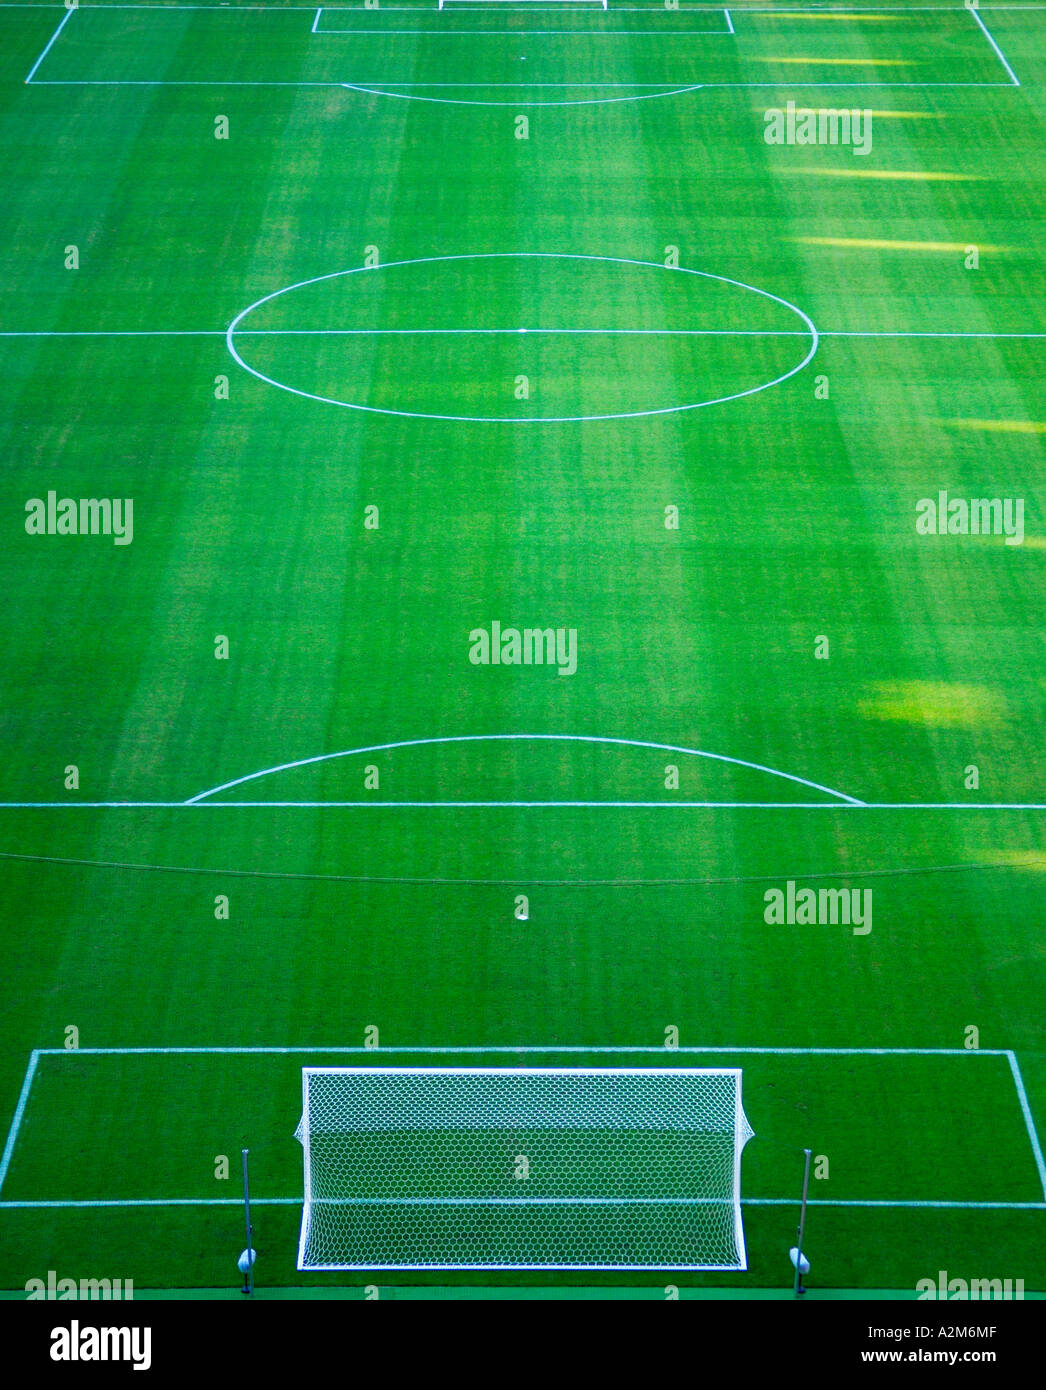 aerial view of football pitch in stadium - Stock Image